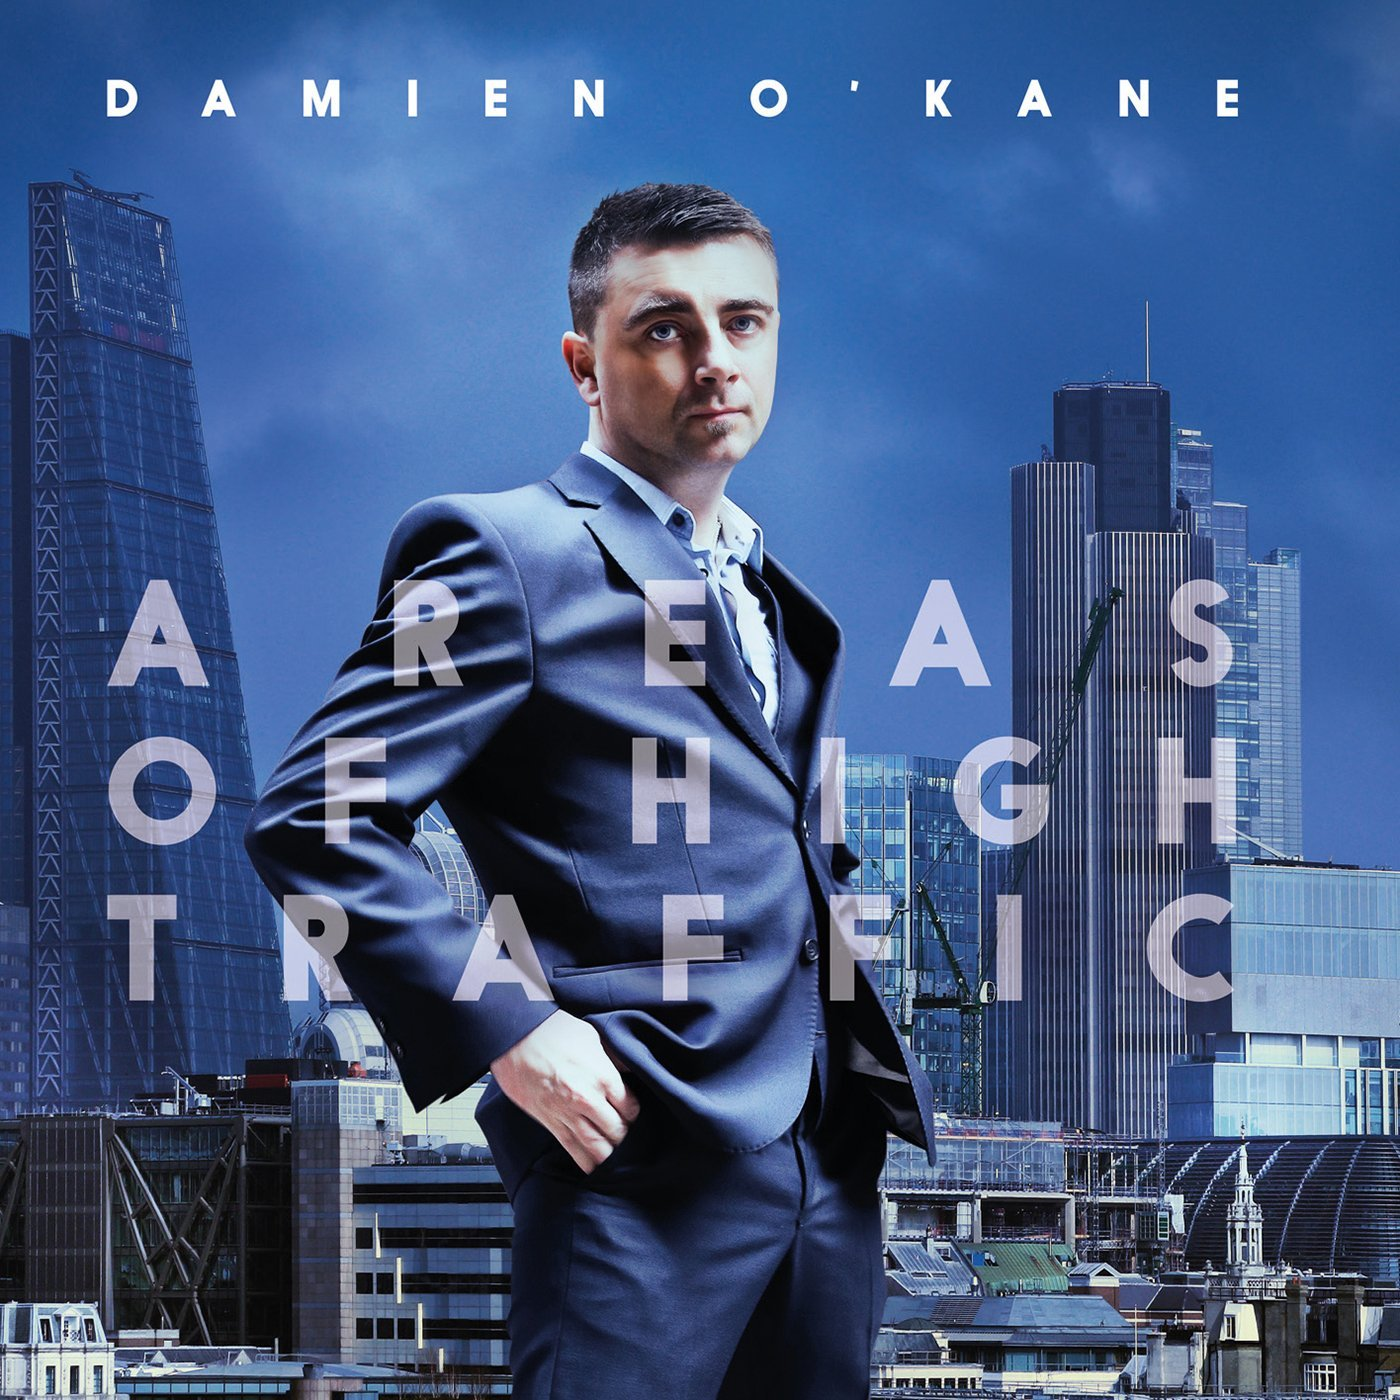 Artist:  Damien O'Kane   Title:  Areas of High Traffic   Label:  Pure Records   Credit:  Mixing   Year:  2015